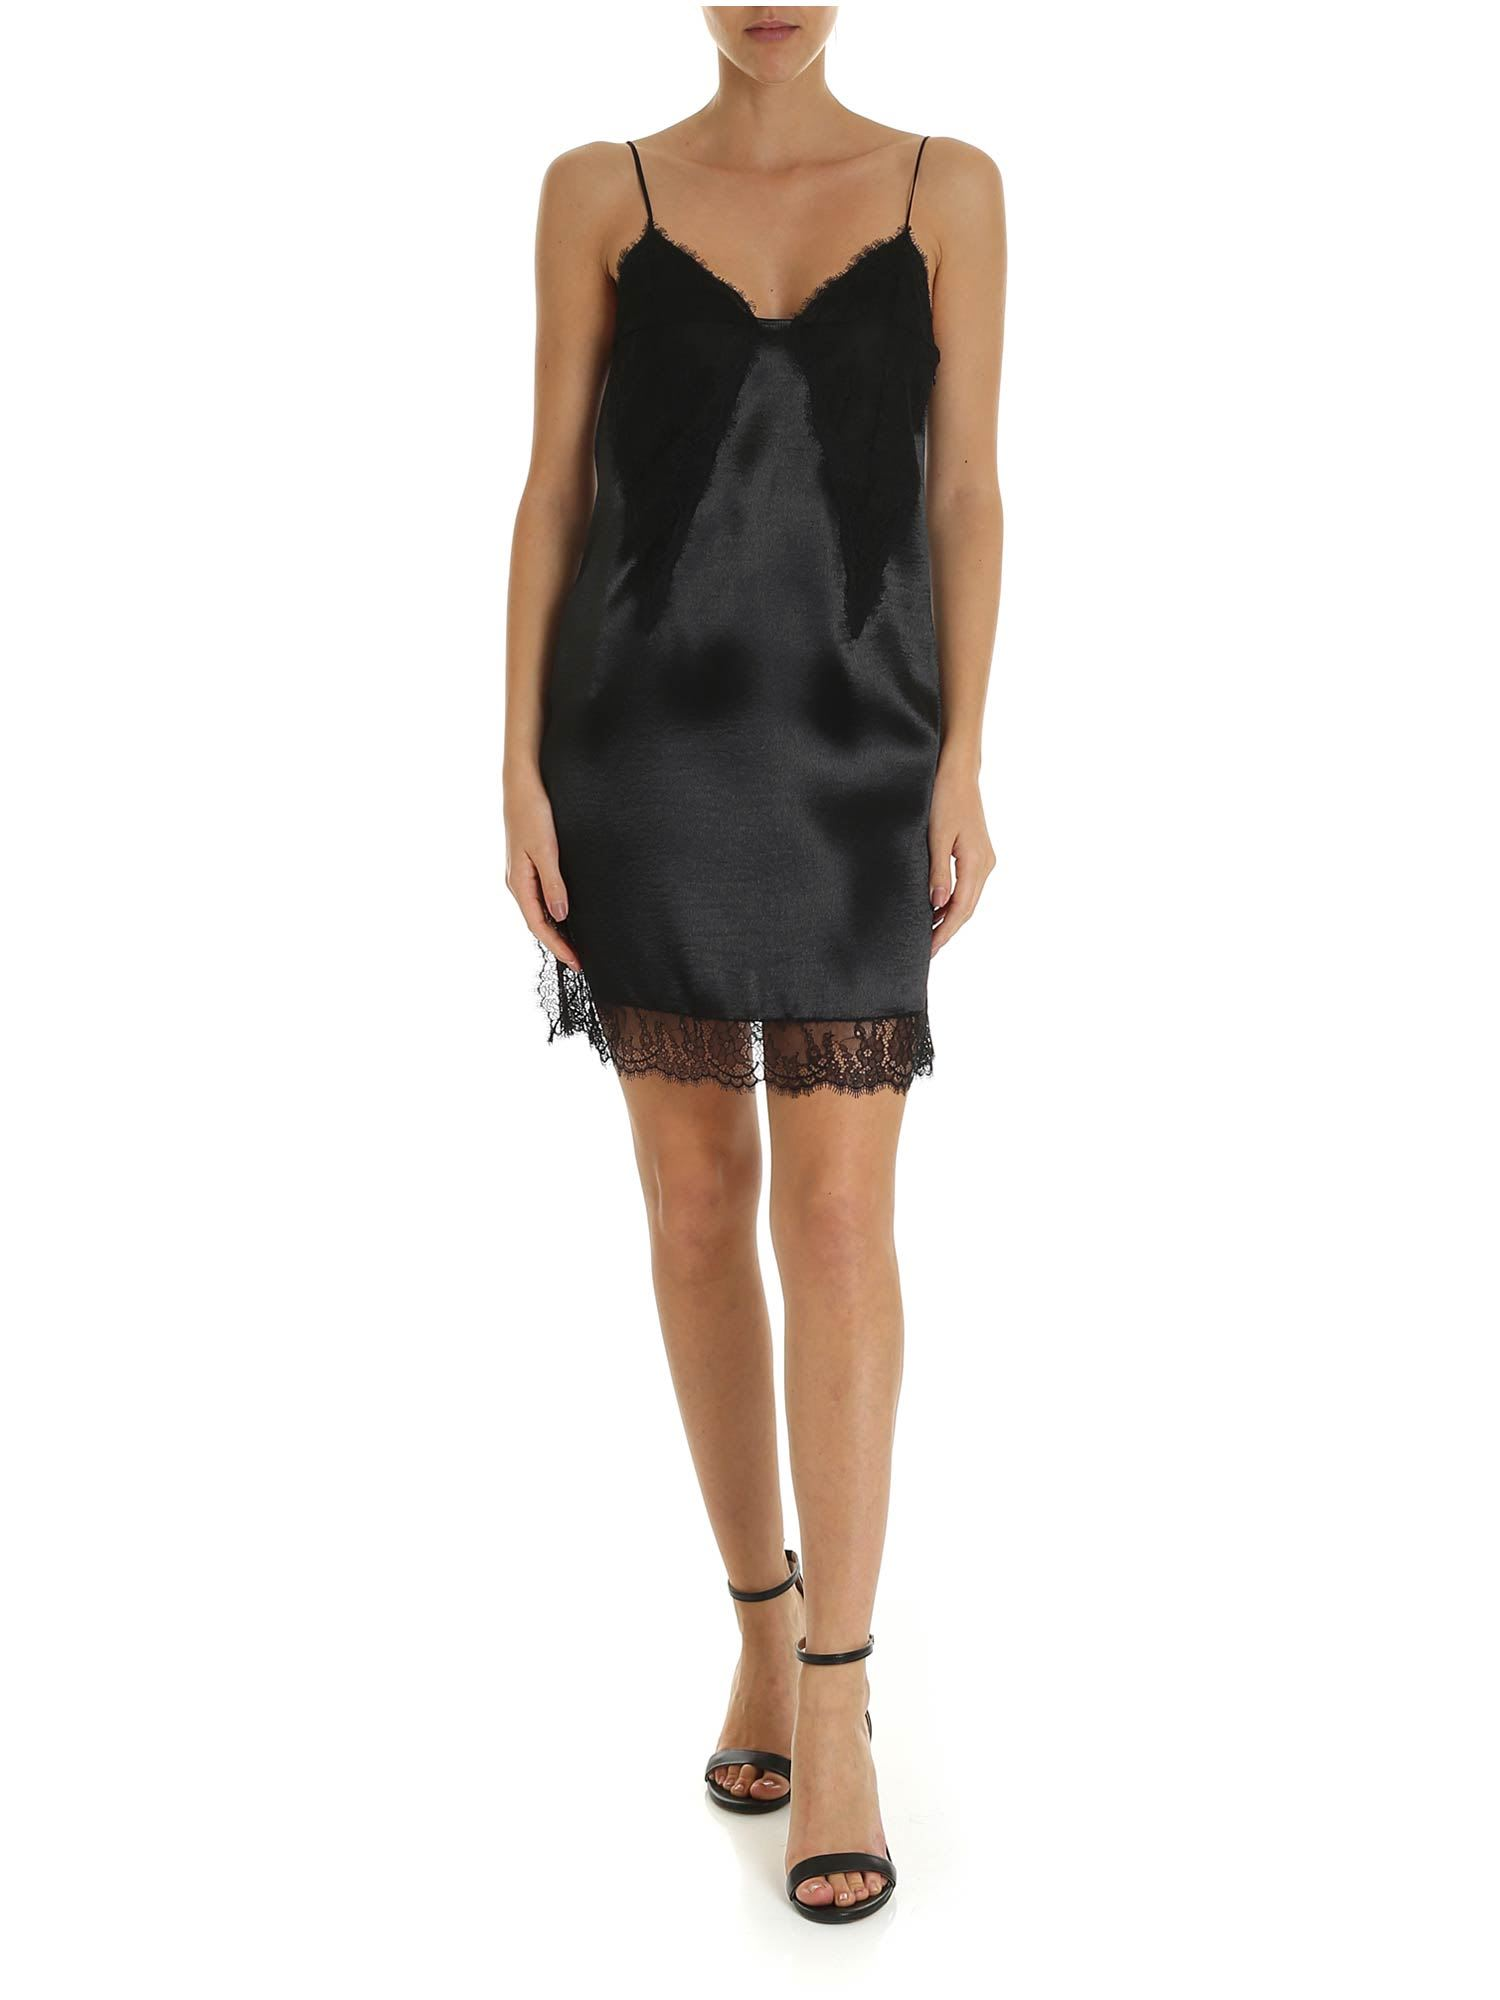 Buy Philosophy - Dress With Lace Details online, shop Philosophy di Lorenzo Serafini with free shipping